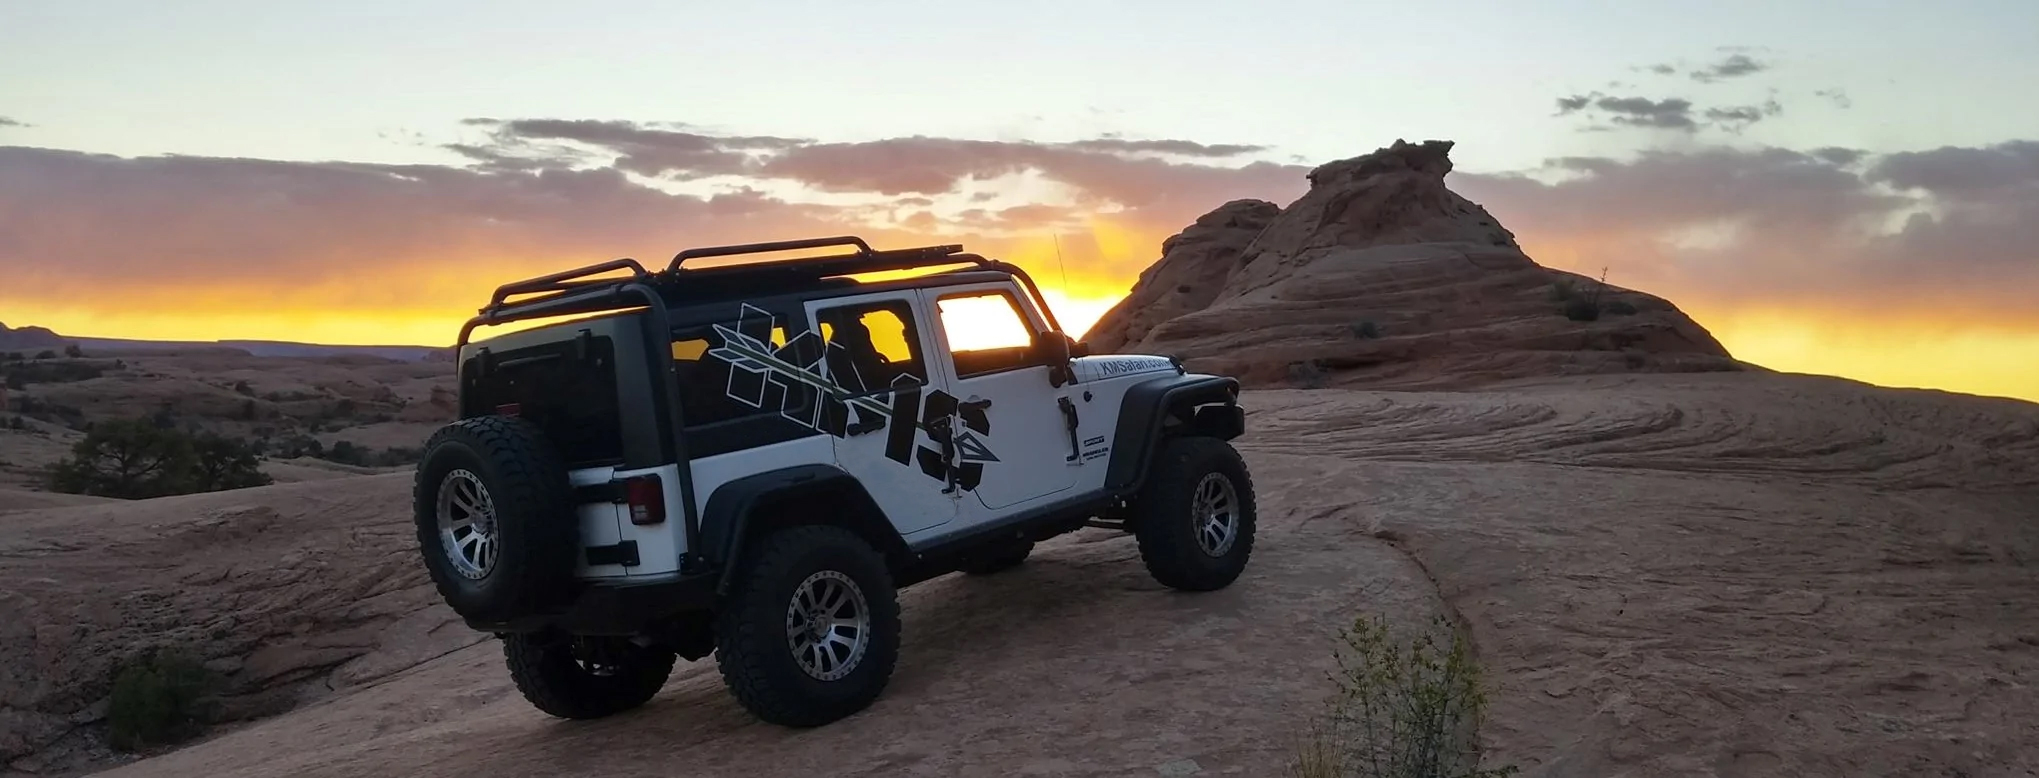 jeep with kms rack on desert mountain